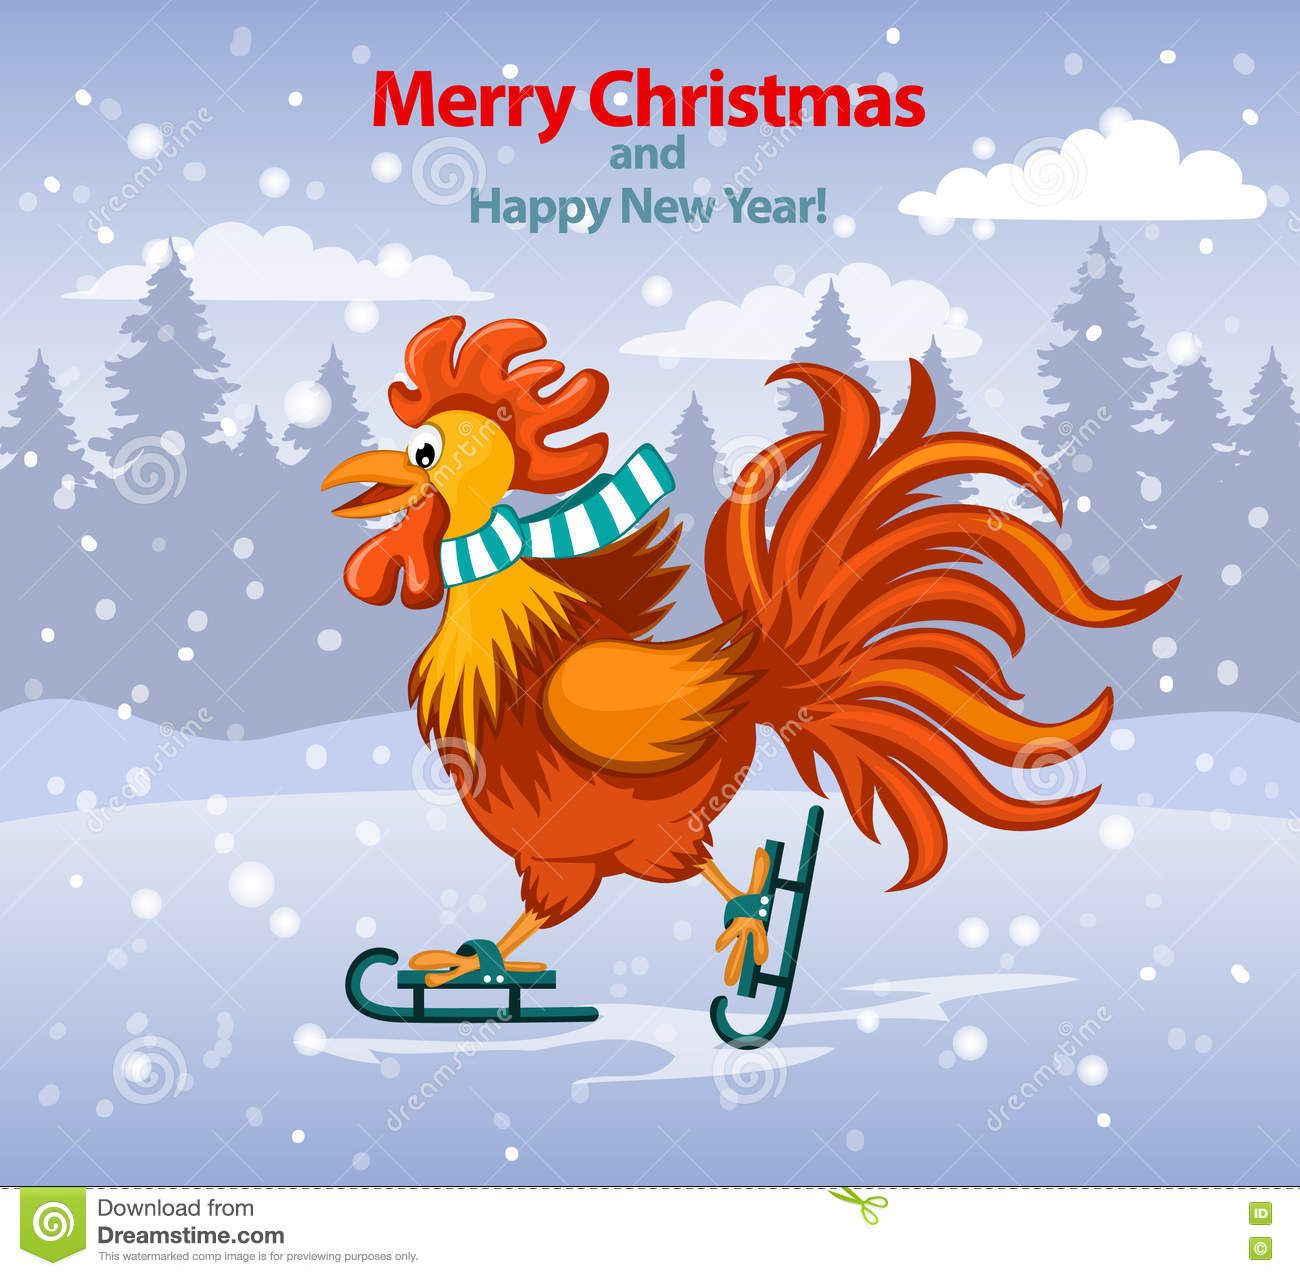 Merry Christmas Funny china Cartoon New Year Card With